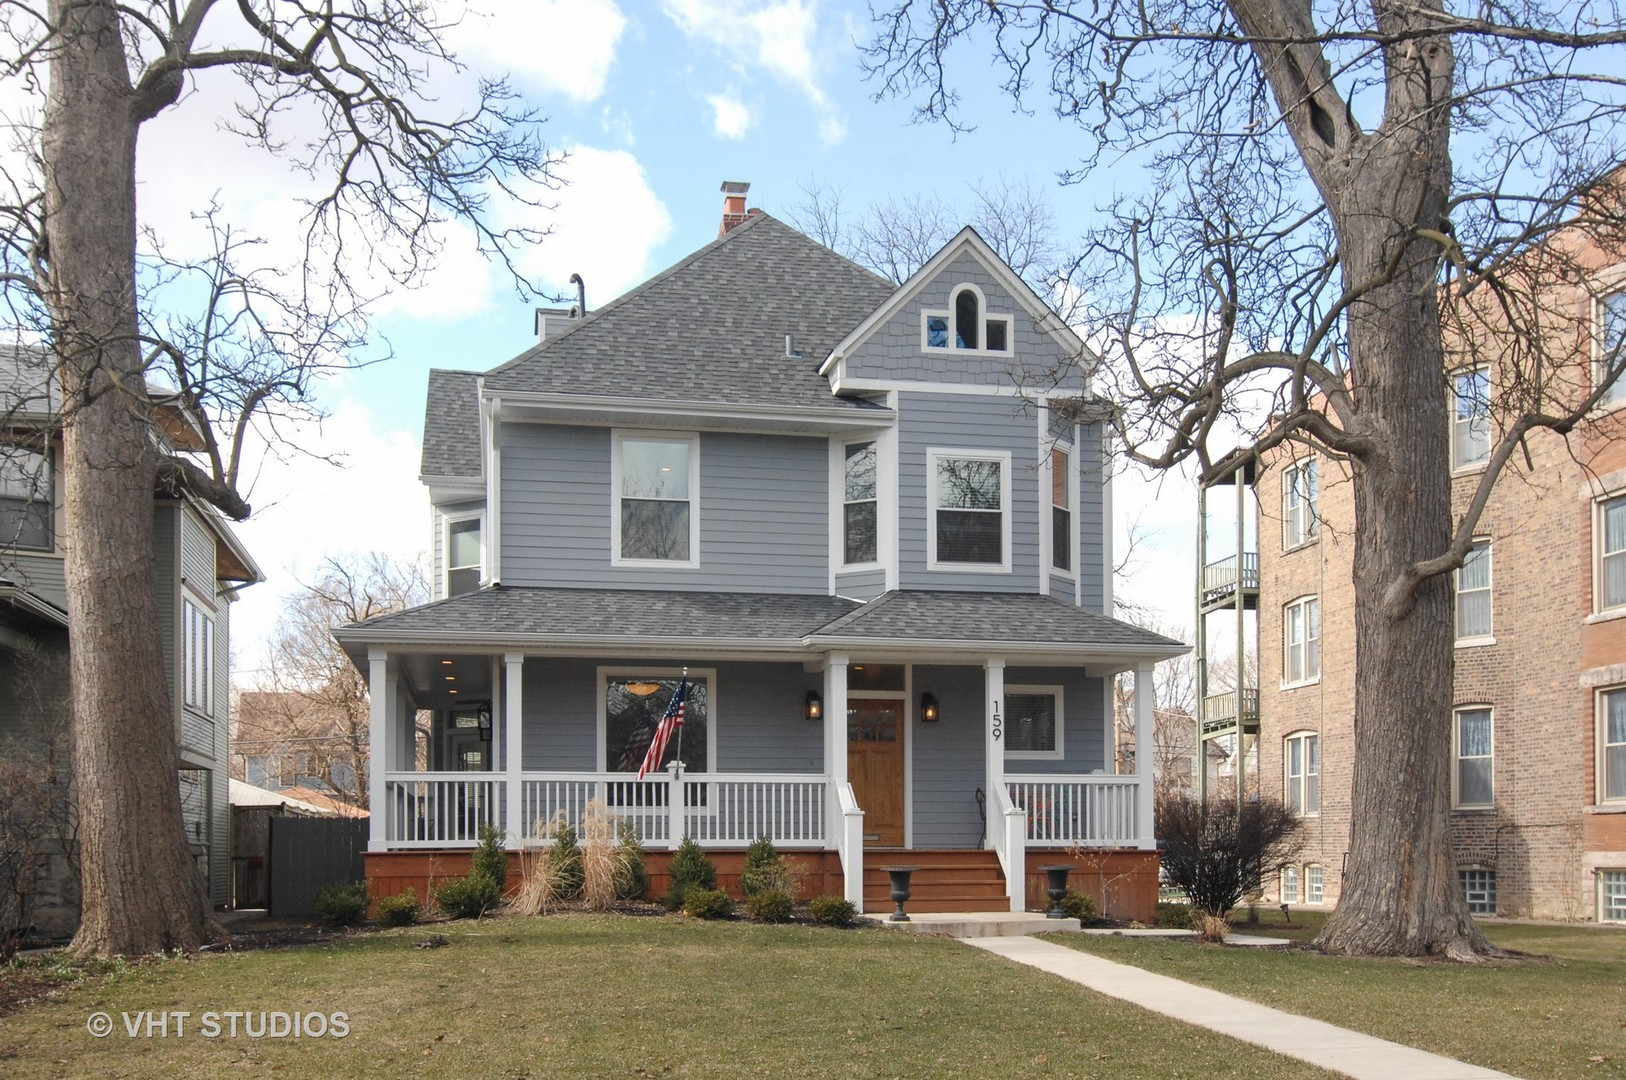 159 NORTH TAYLOR AVENUE, OAK PARK, IL 60302